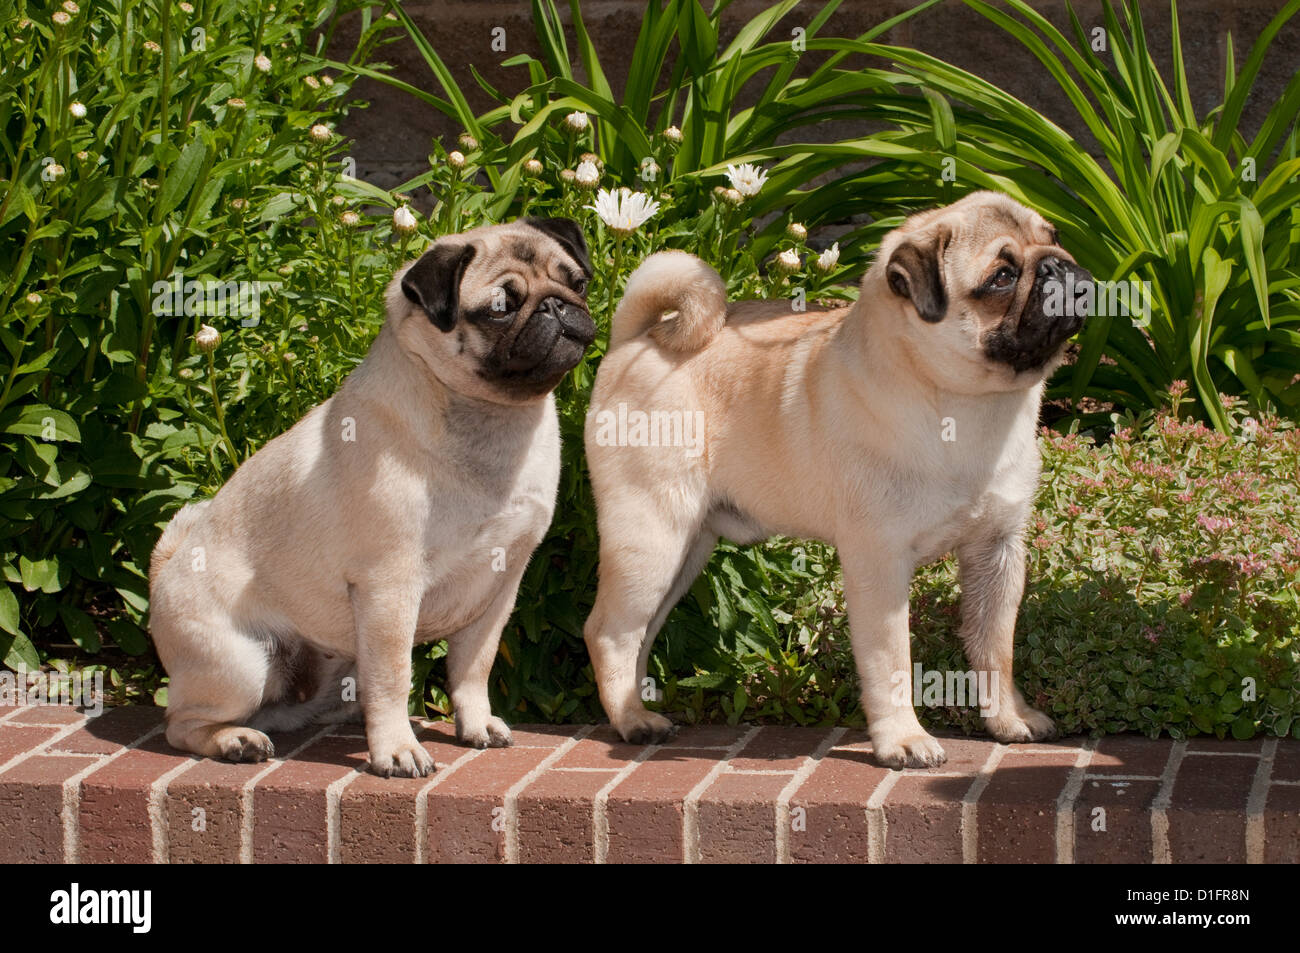 Two pugs on brick wall - Stock Image